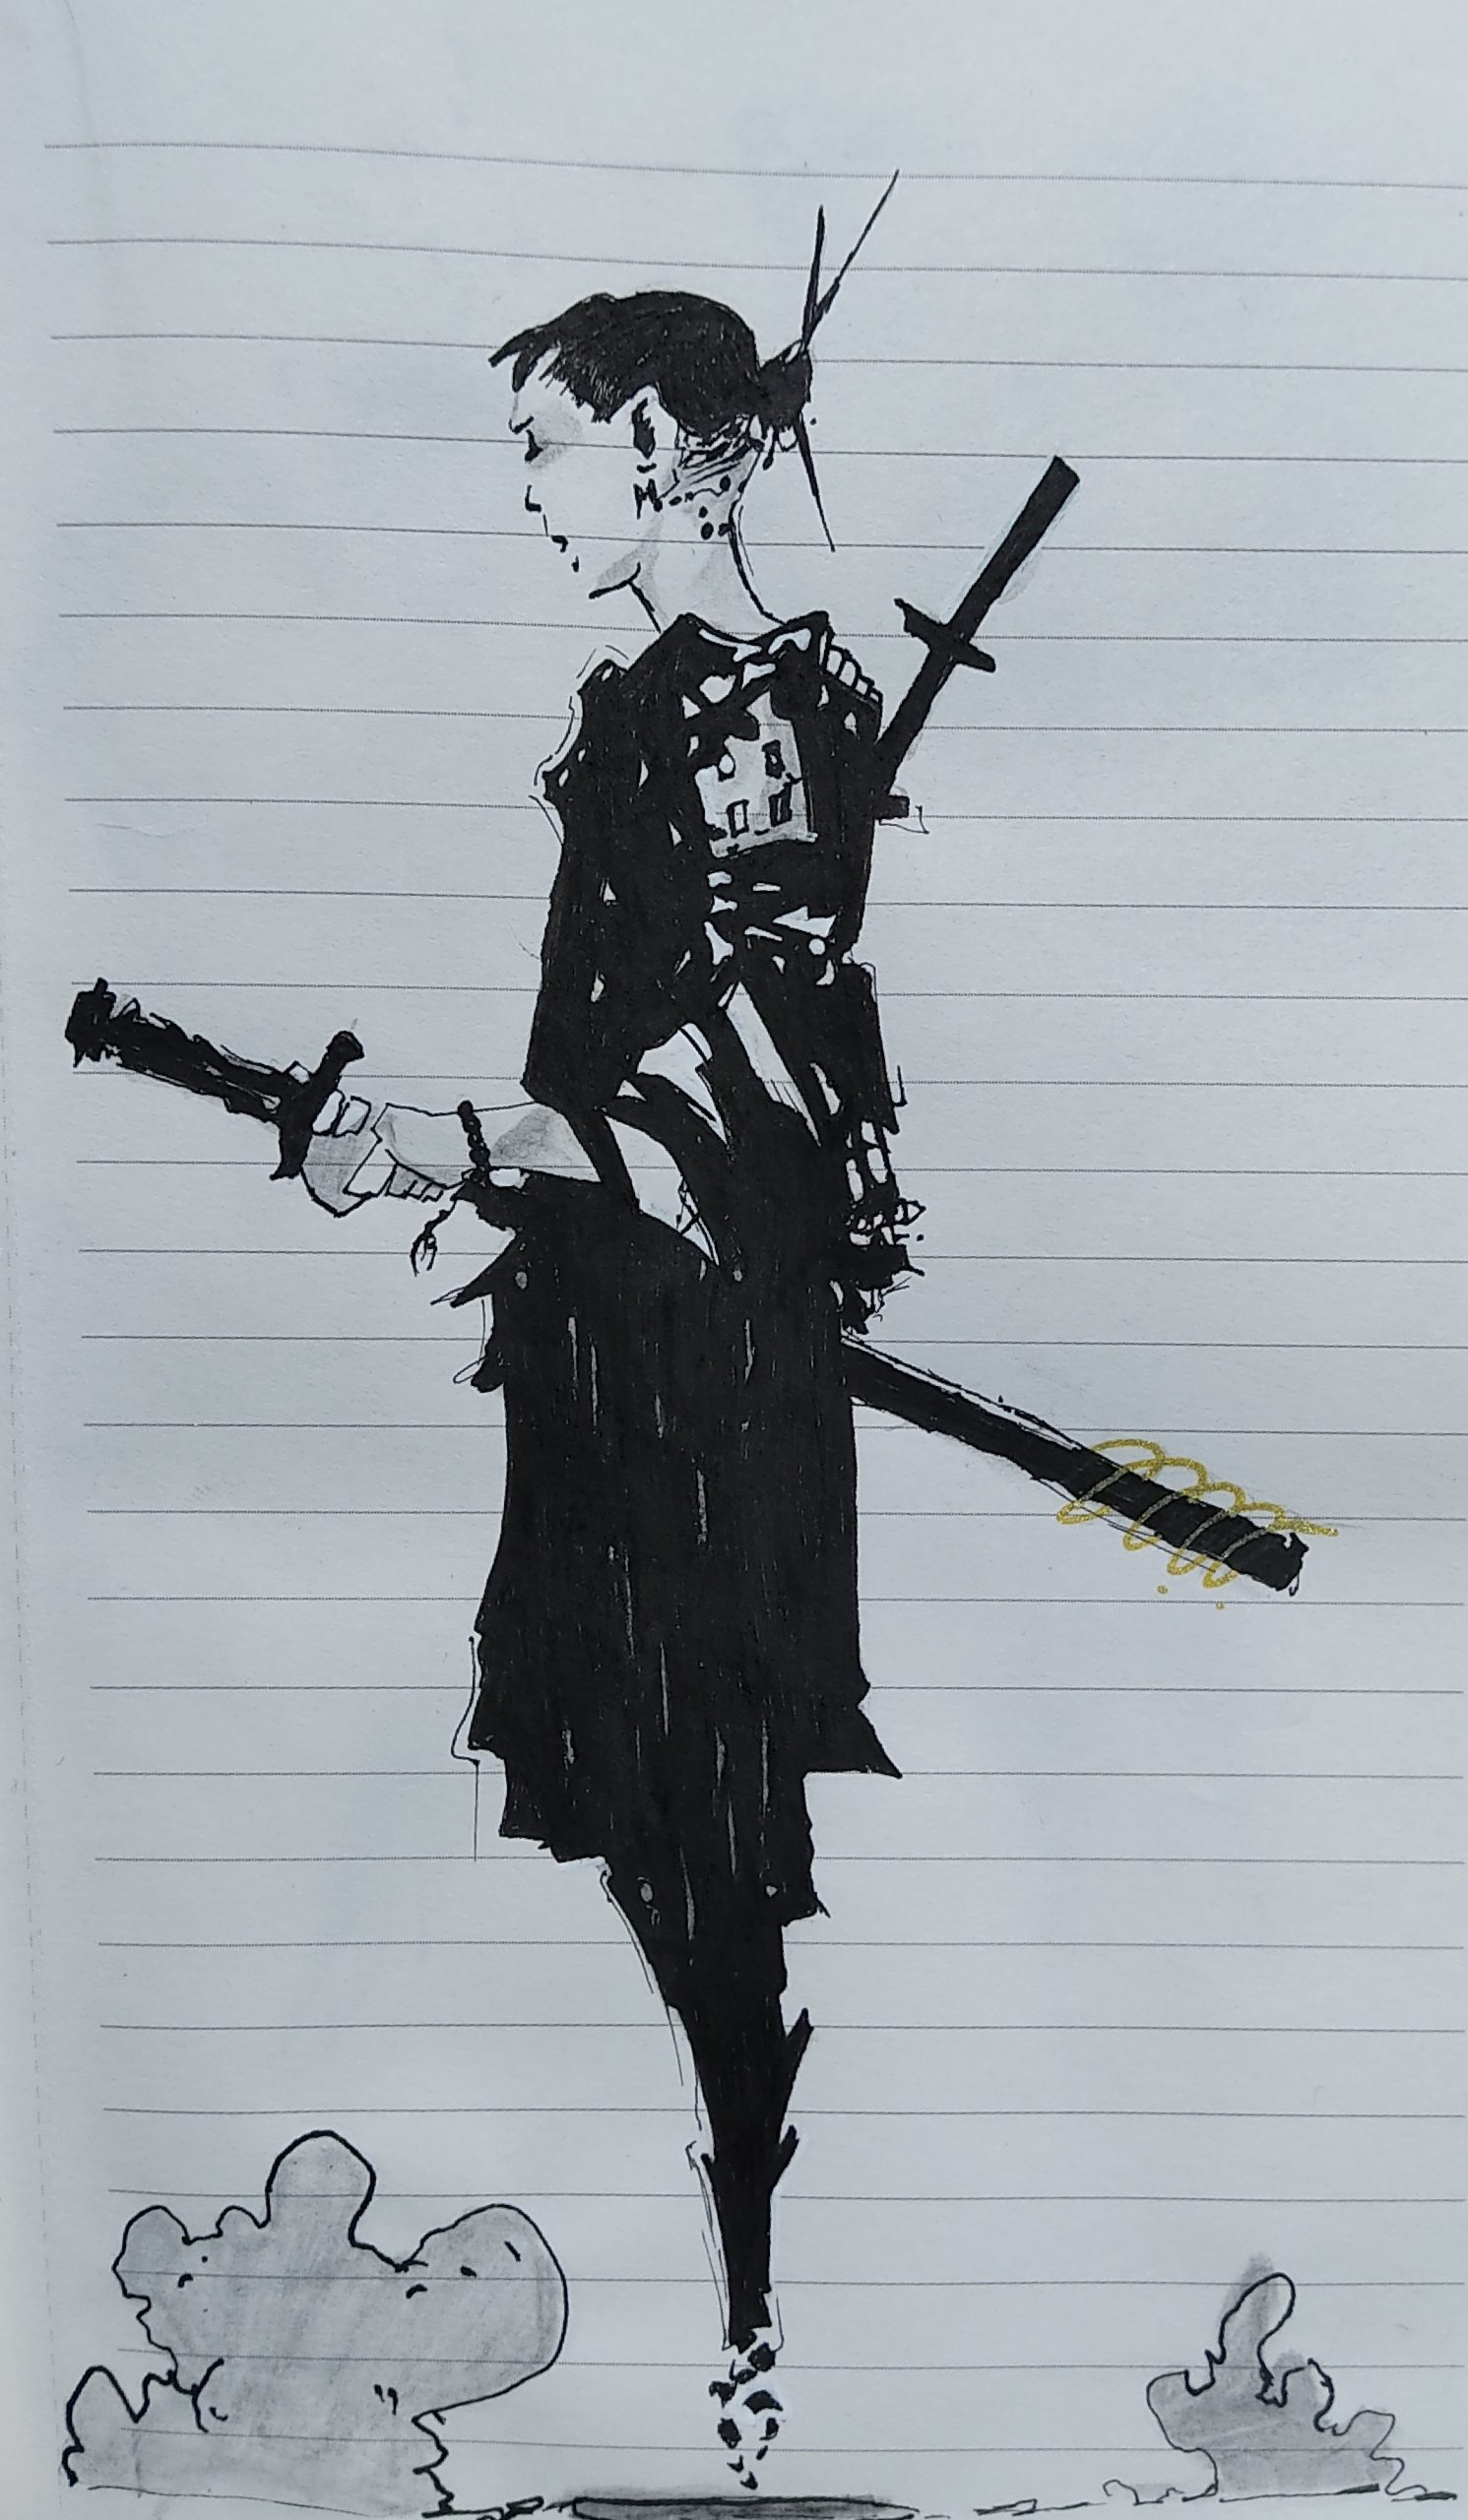 Drawing of a swordsman